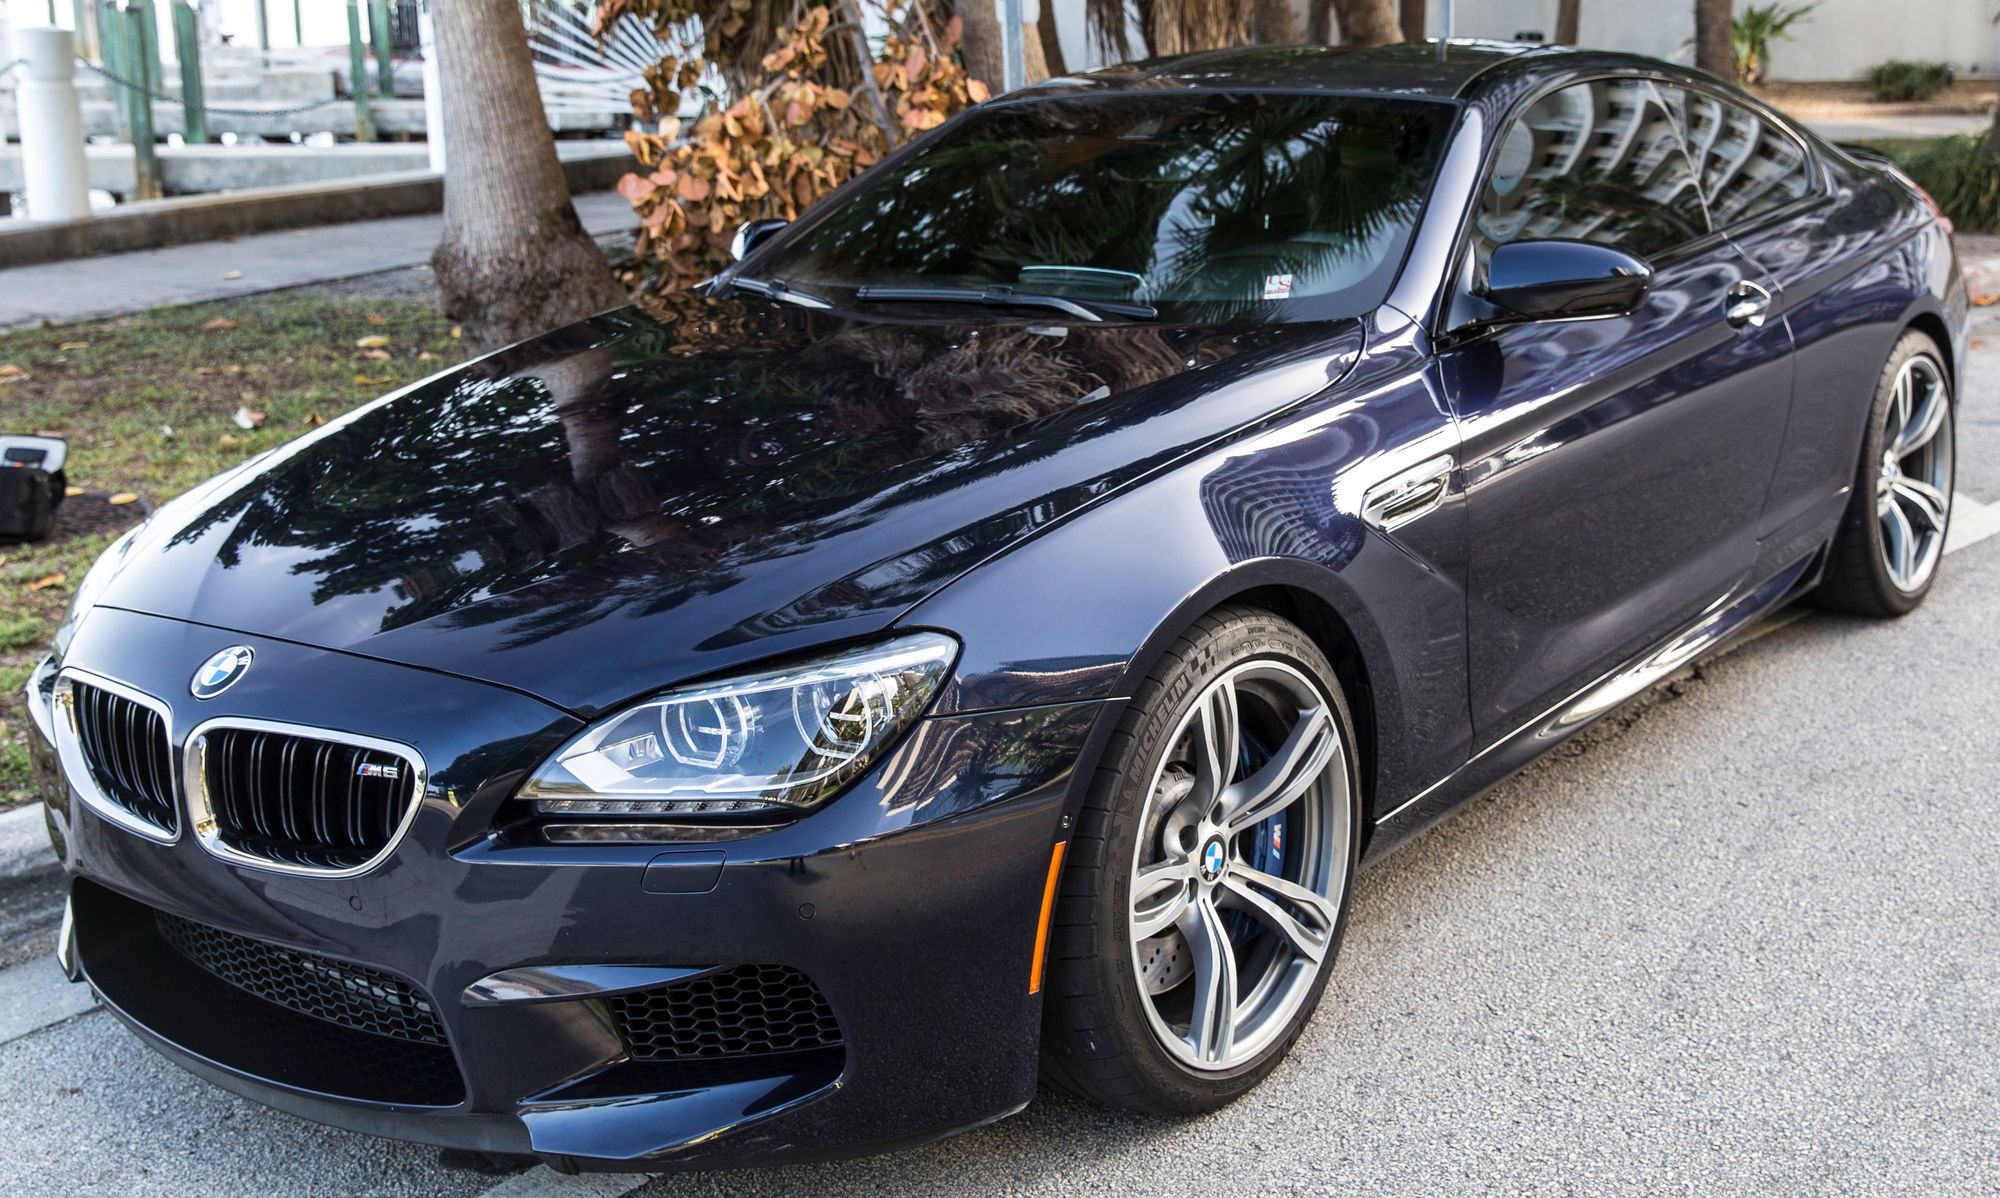 2013 bmw m6 coupe lease takeover 1299 month rennlist. Black Bedroom Furniture Sets. Home Design Ideas